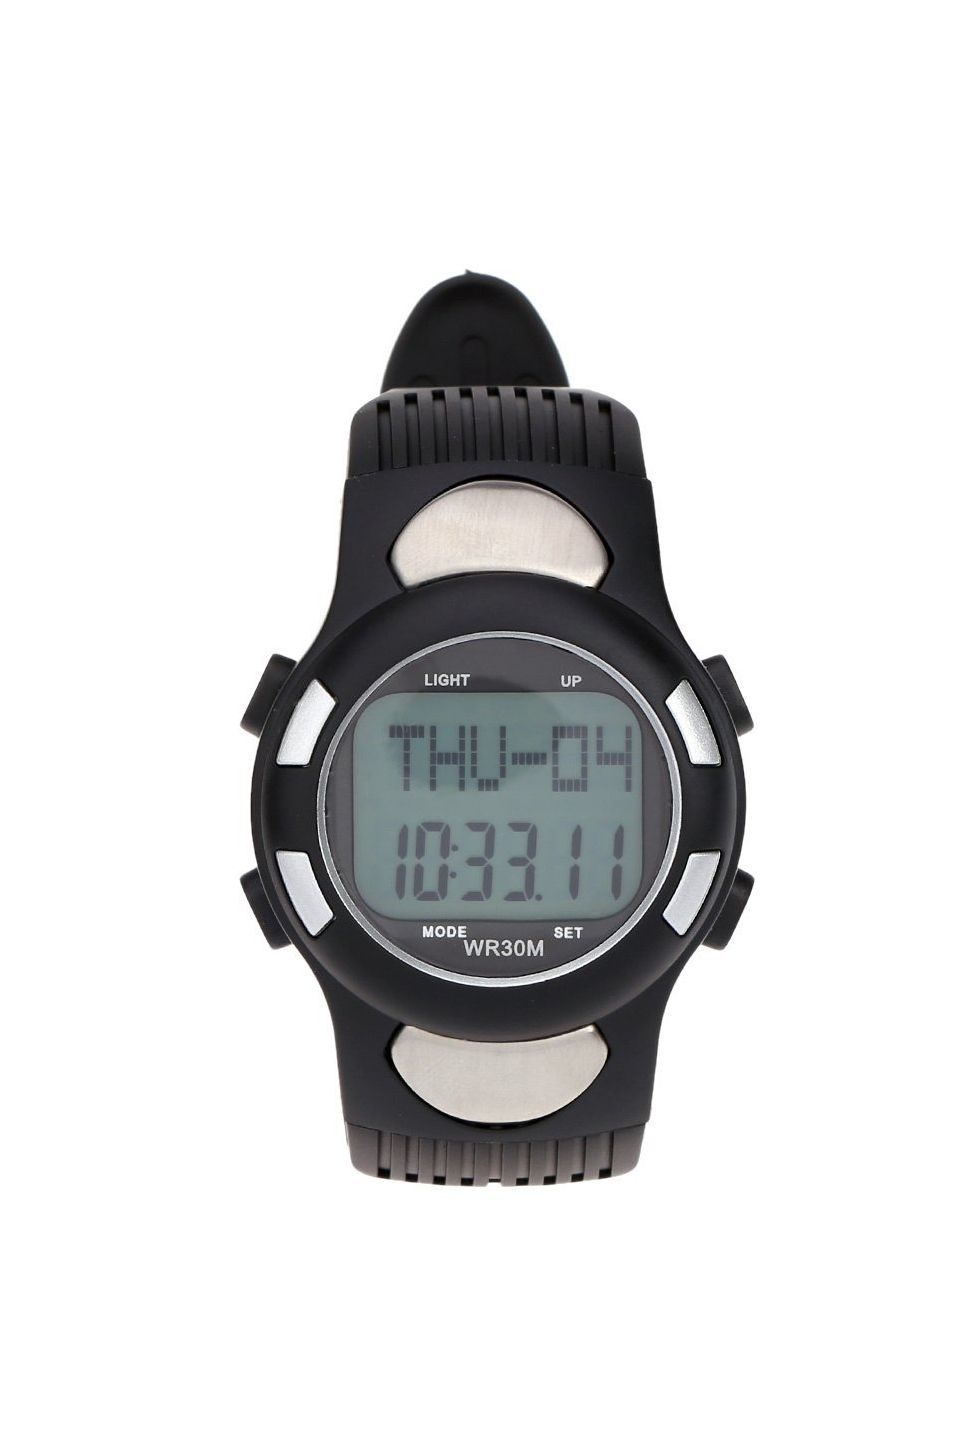 JHO-3ATM Water-resistant Sports Pulse Heart Rate Monitor Fitness Exercise Watch Pedometer Calorie Stopwatch Outdoor Cycling